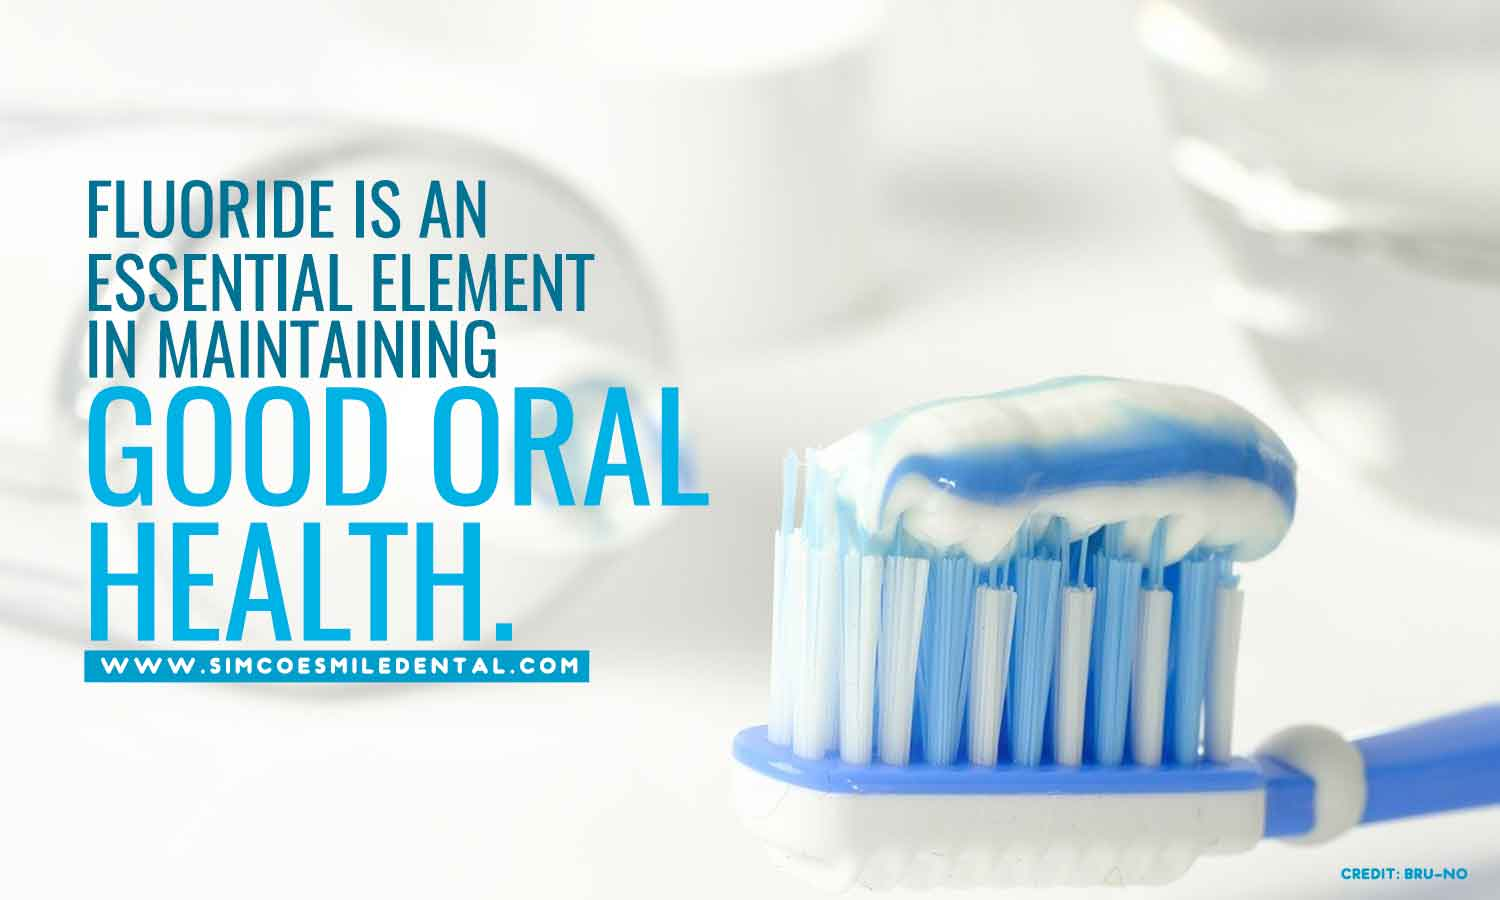 Fluoride-is-an-essential-element-essential-in-maintaining-good-oral-health How A Healthy Lifestyle Can Preserve Your Oral Health